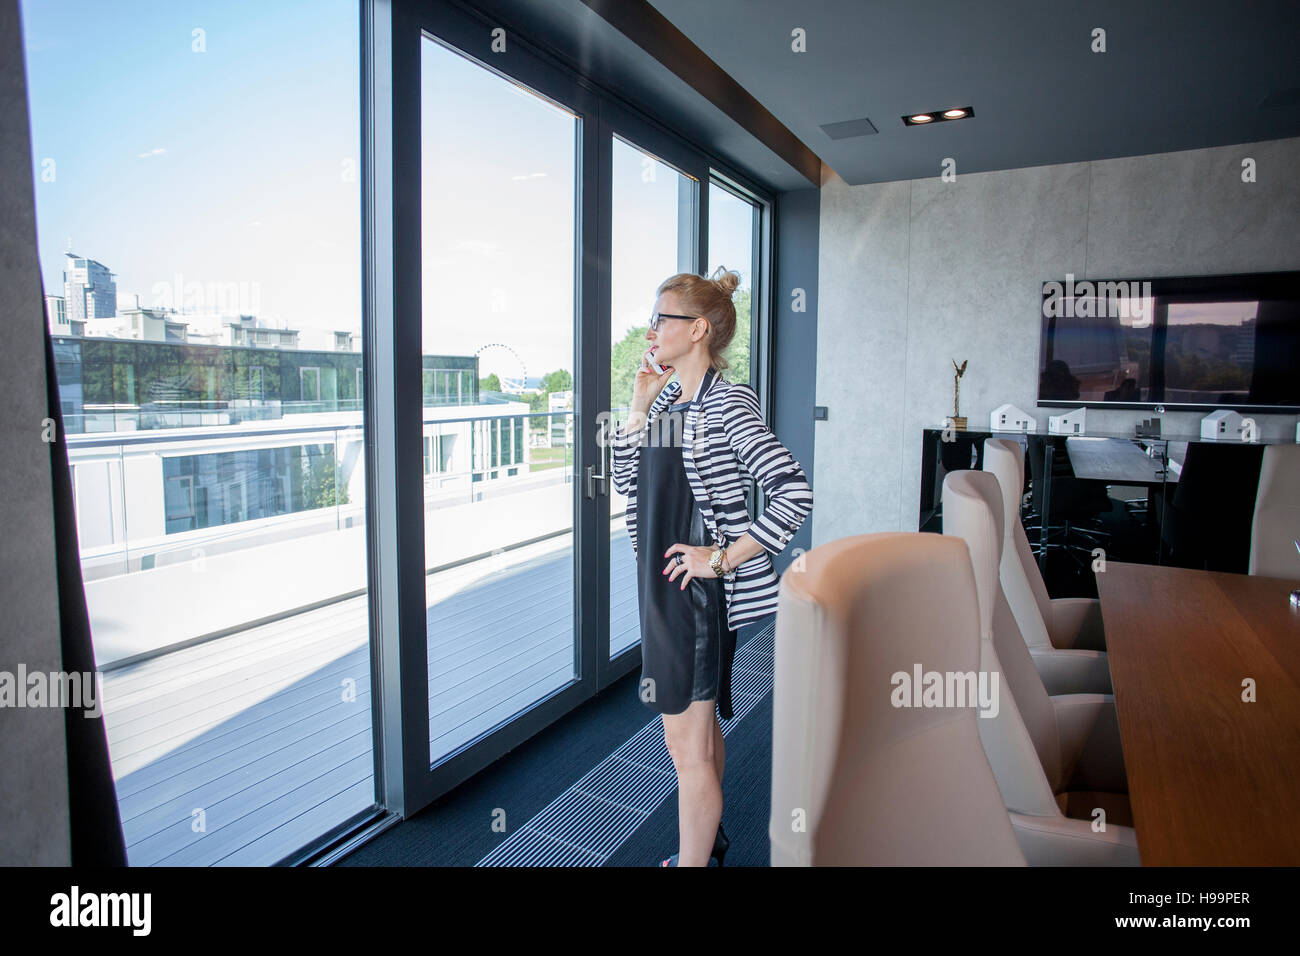 Businesswoman in office looking through window - Stock Image